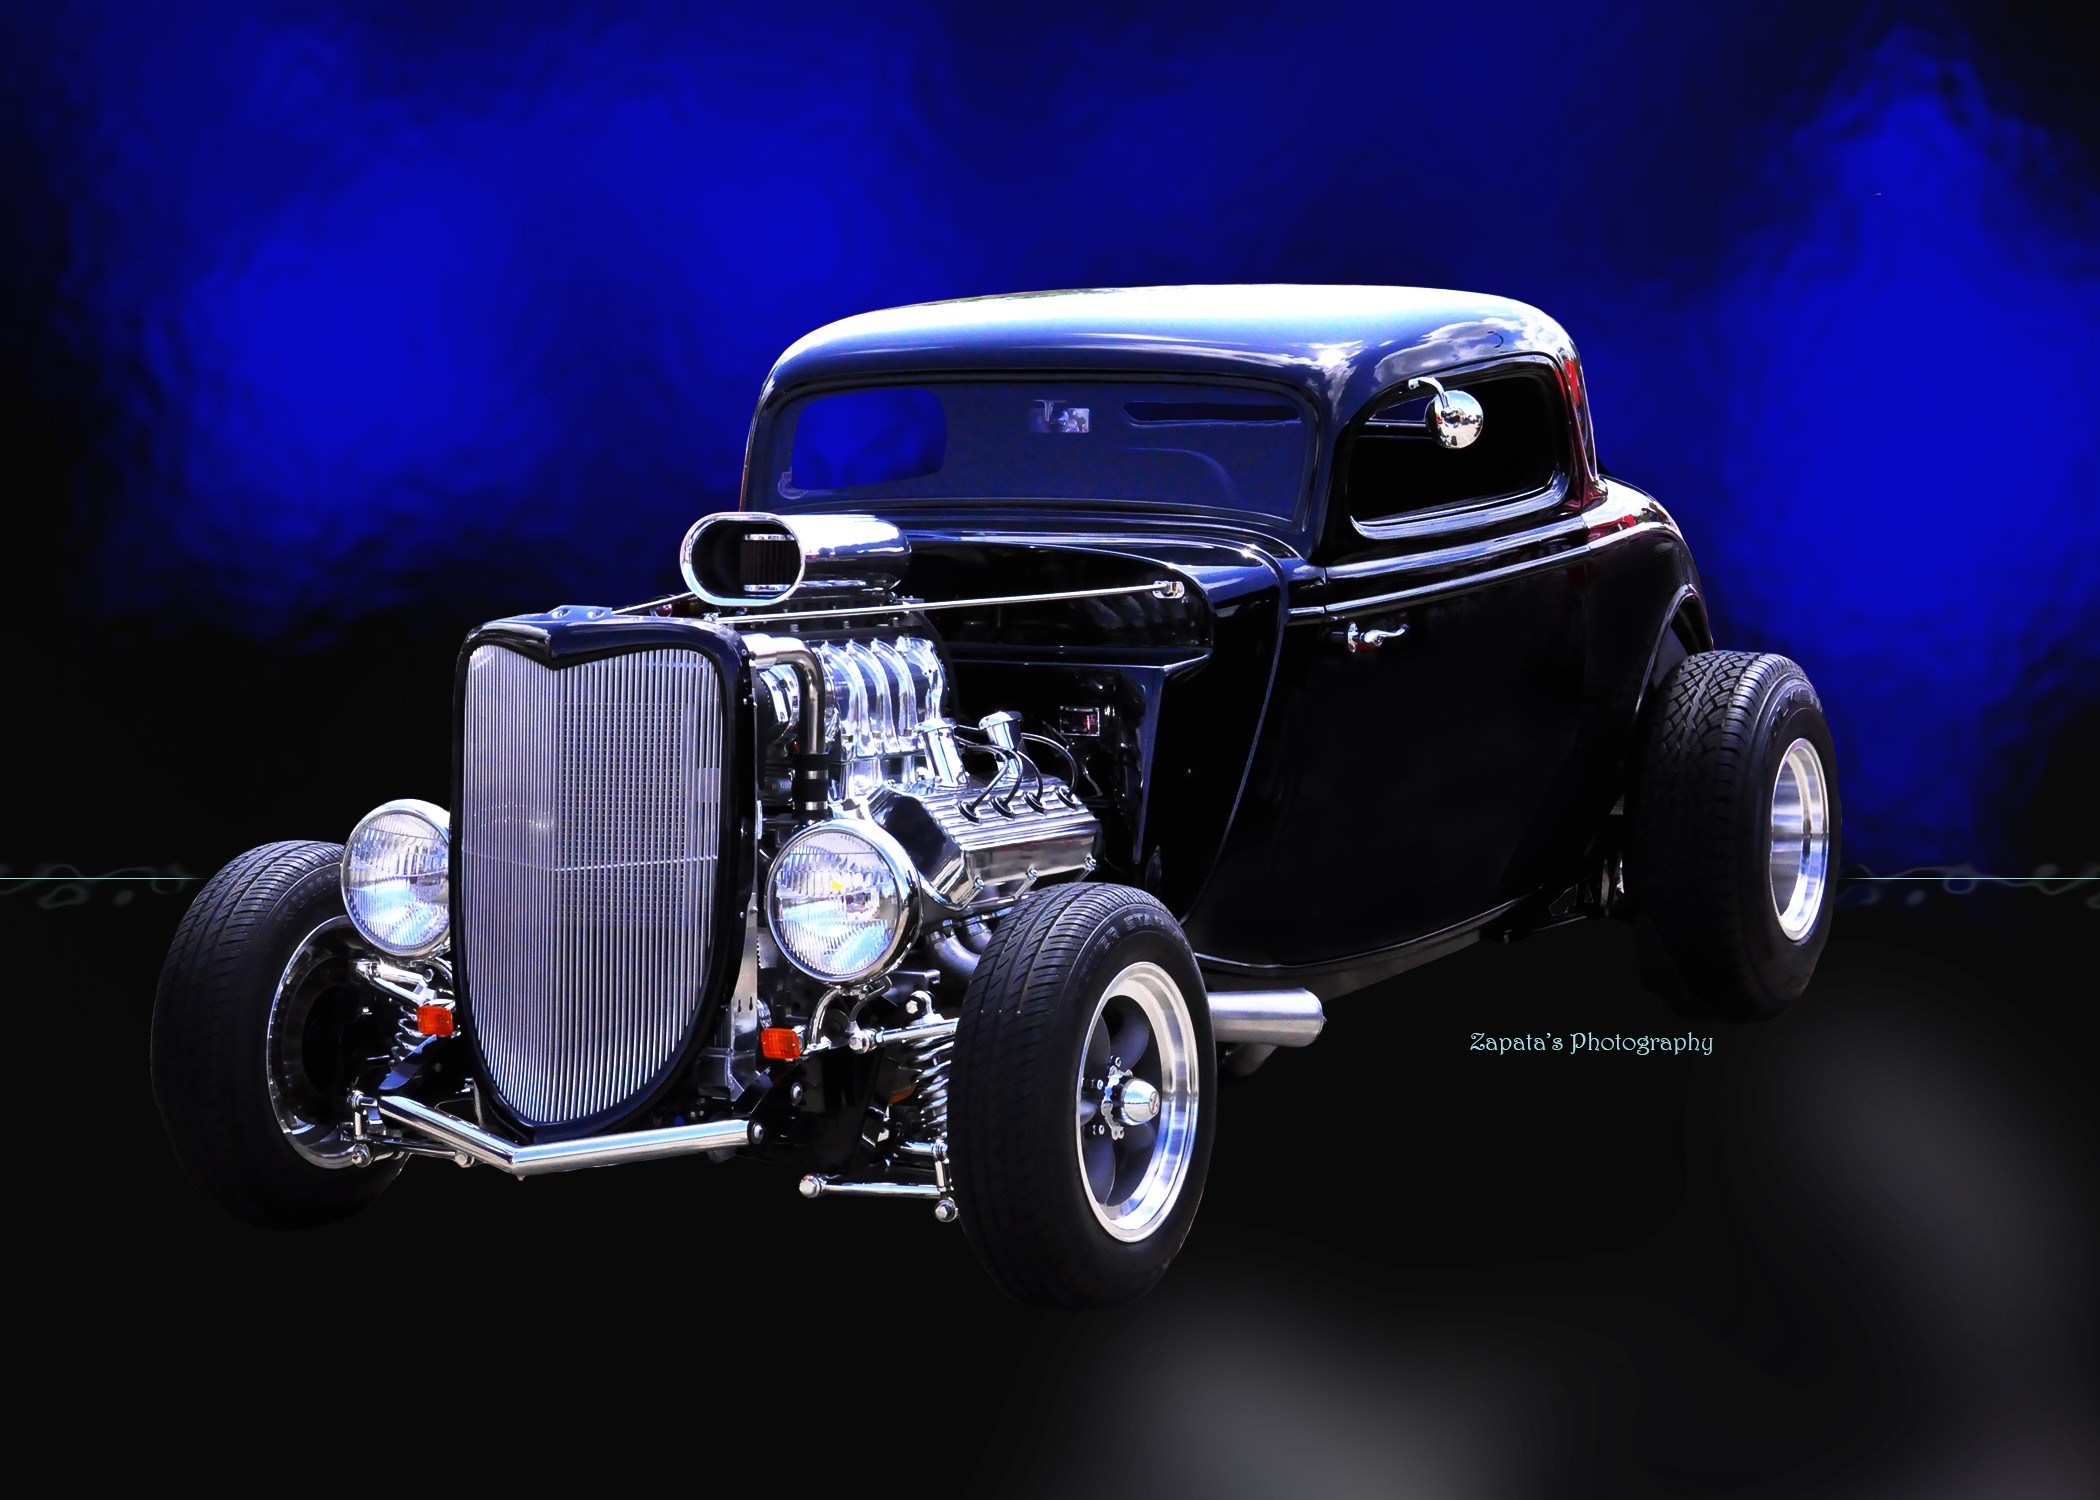 Wallpaper HOT ROD FORD 2Door Car Ford Hotrod Cars Machines 2100x1500